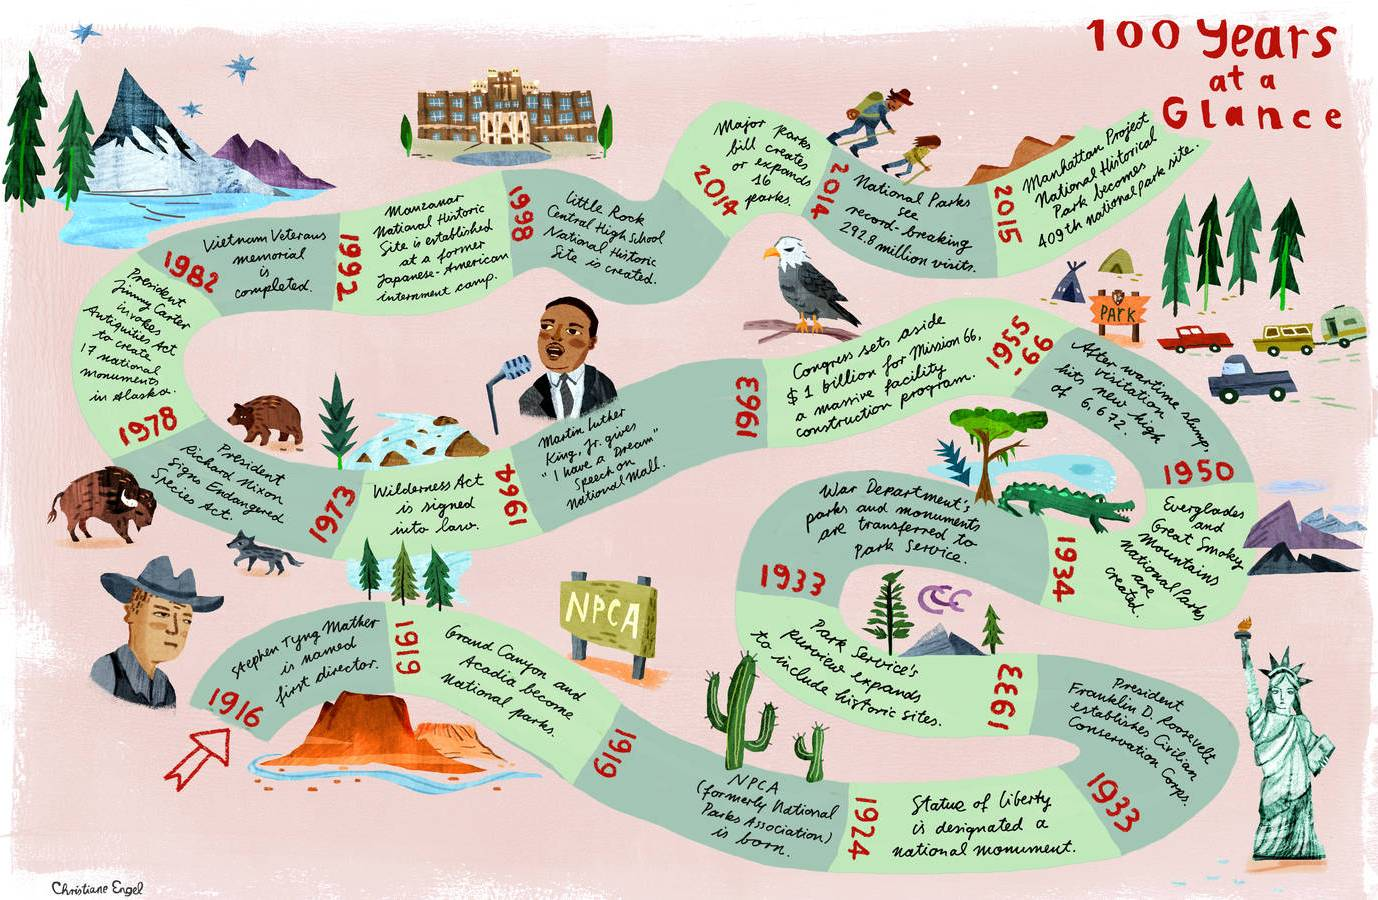 National Parks 100 Years